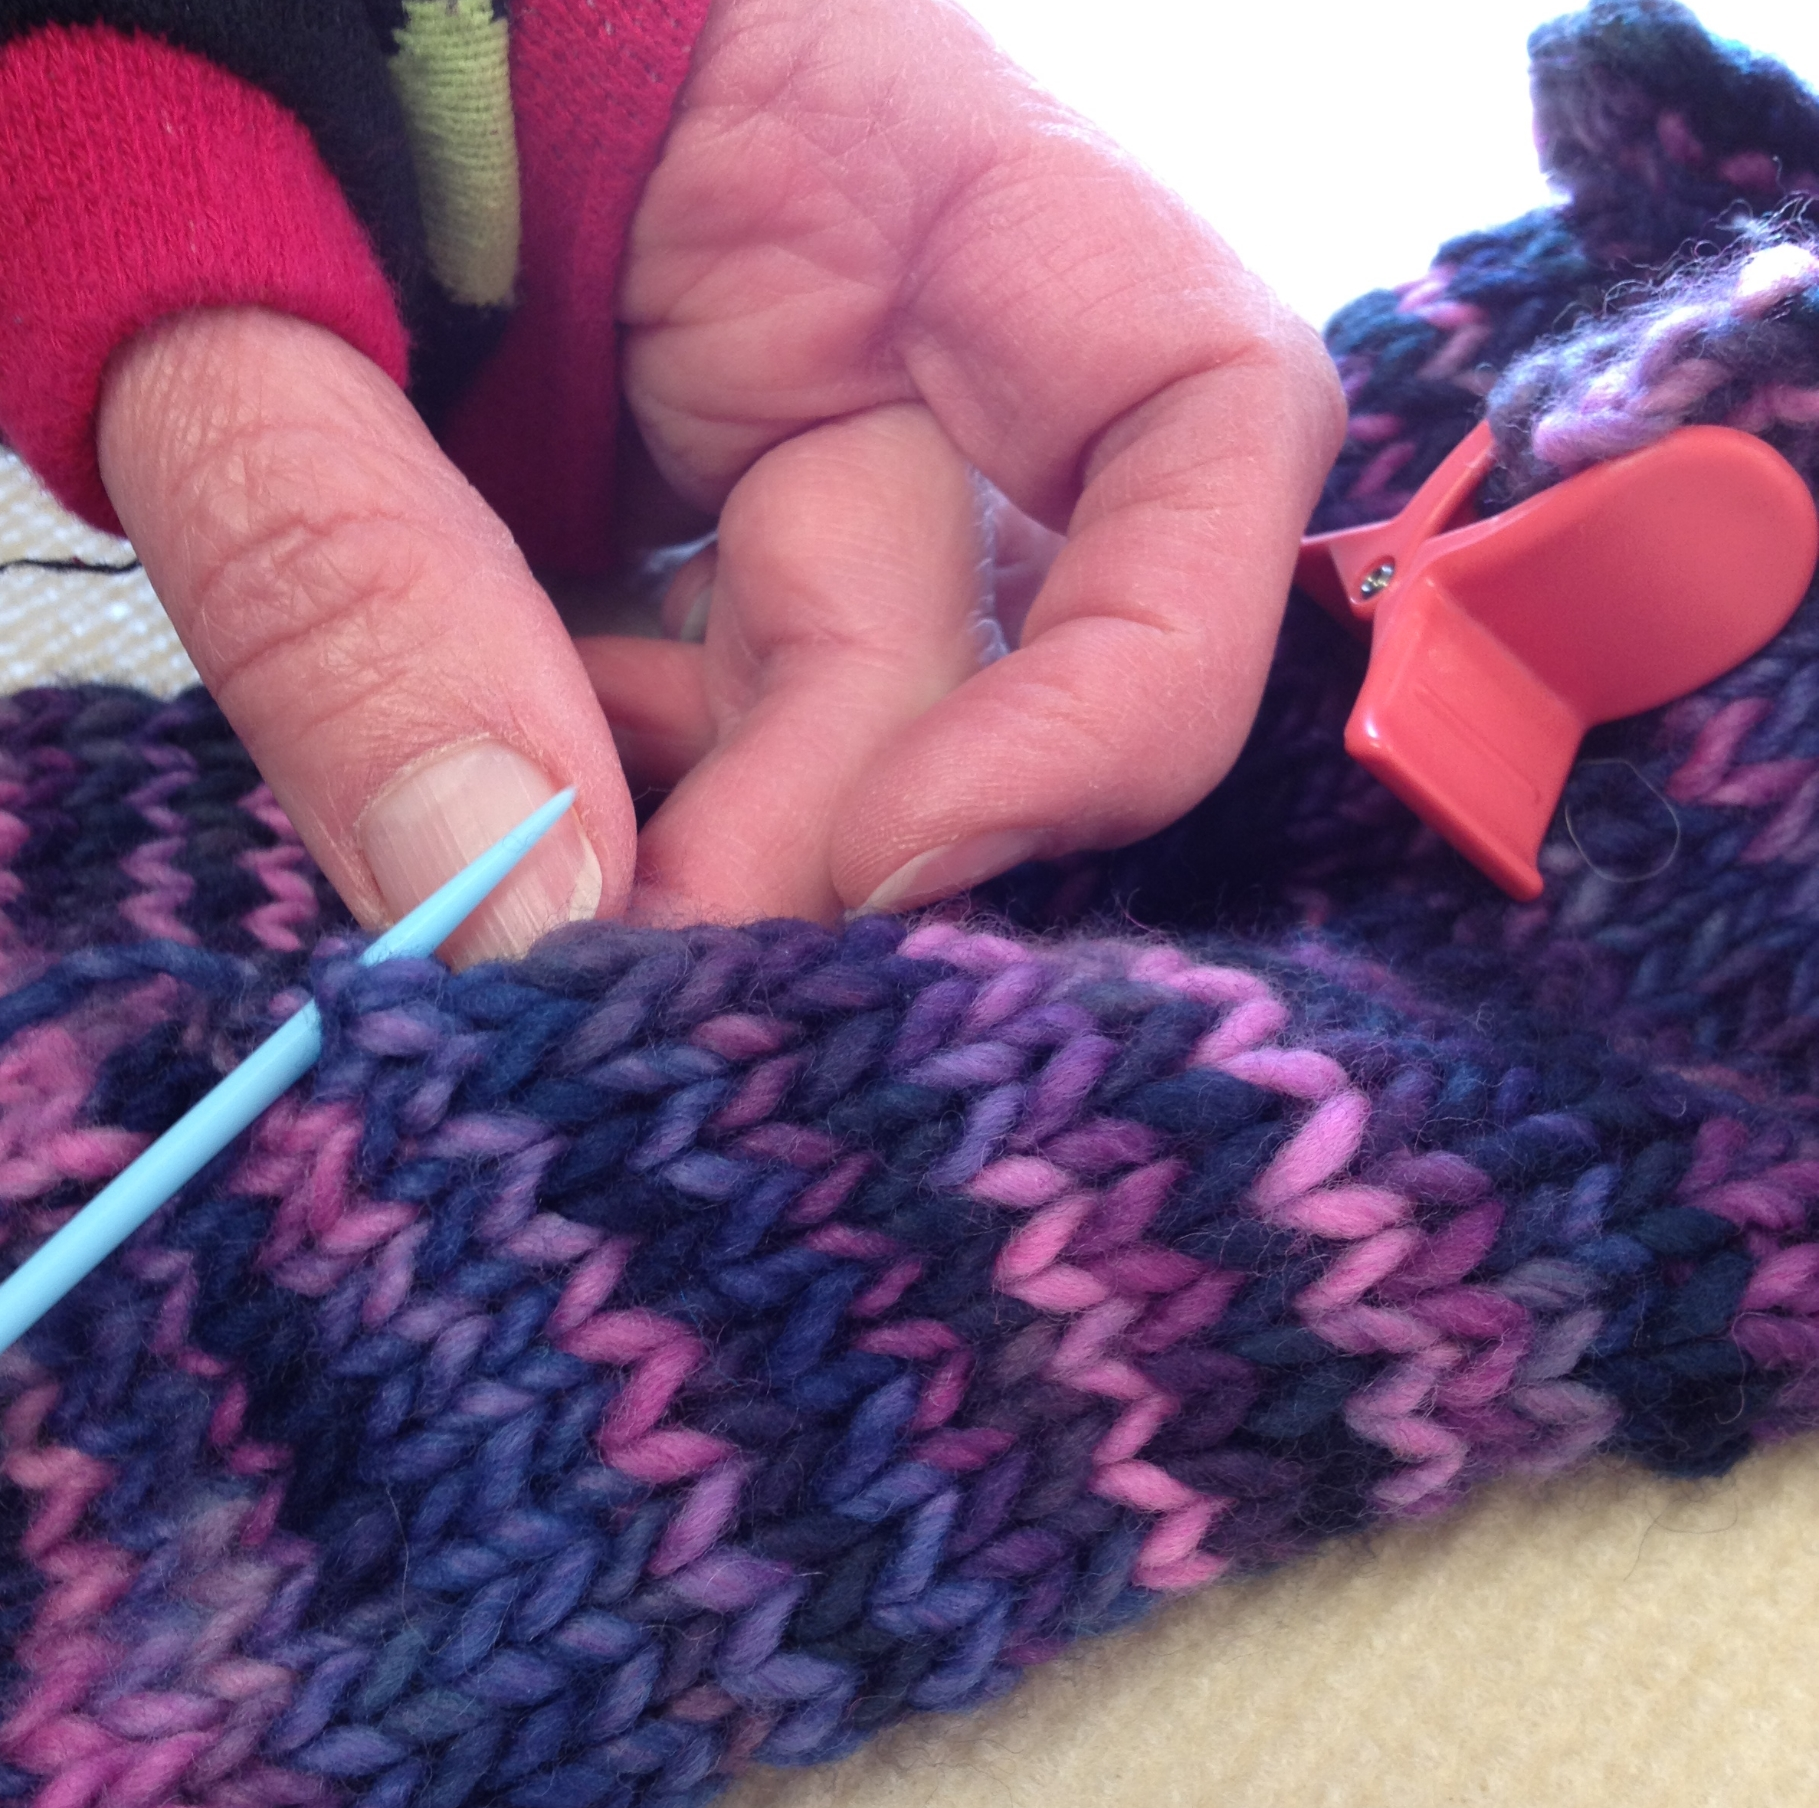 Here's our Yarngirl Lee working her first seam ever with great results. She said it made seaming easy..